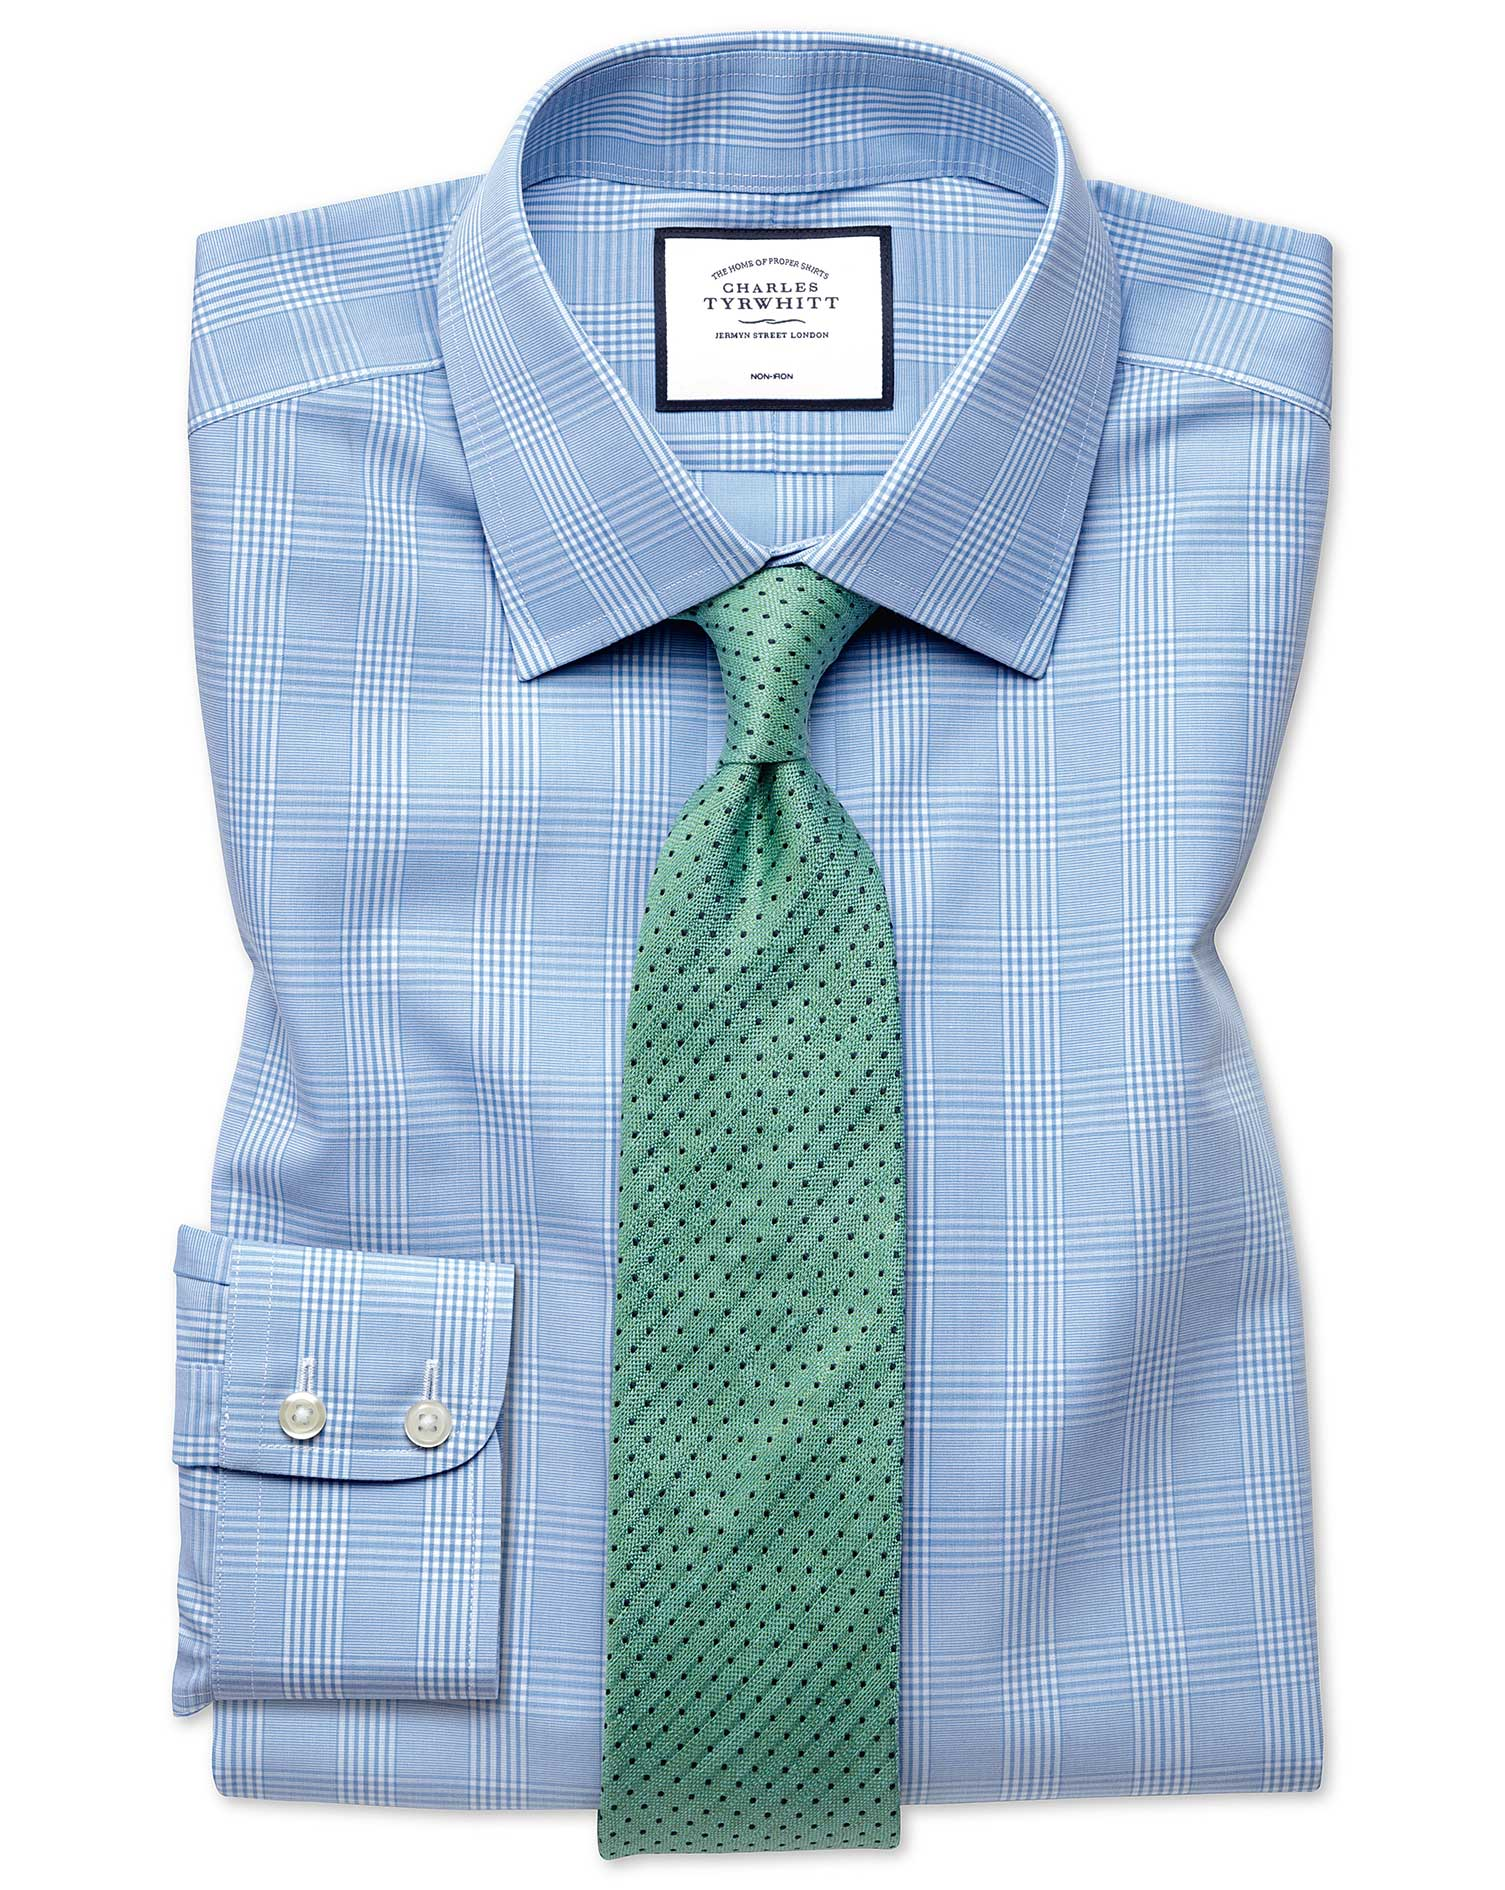 Slim Fit Non-Iron Prince Of Wales Sky Blue Cotton Formal Shirt Single Cuff Size 15.5/34 by Charles T